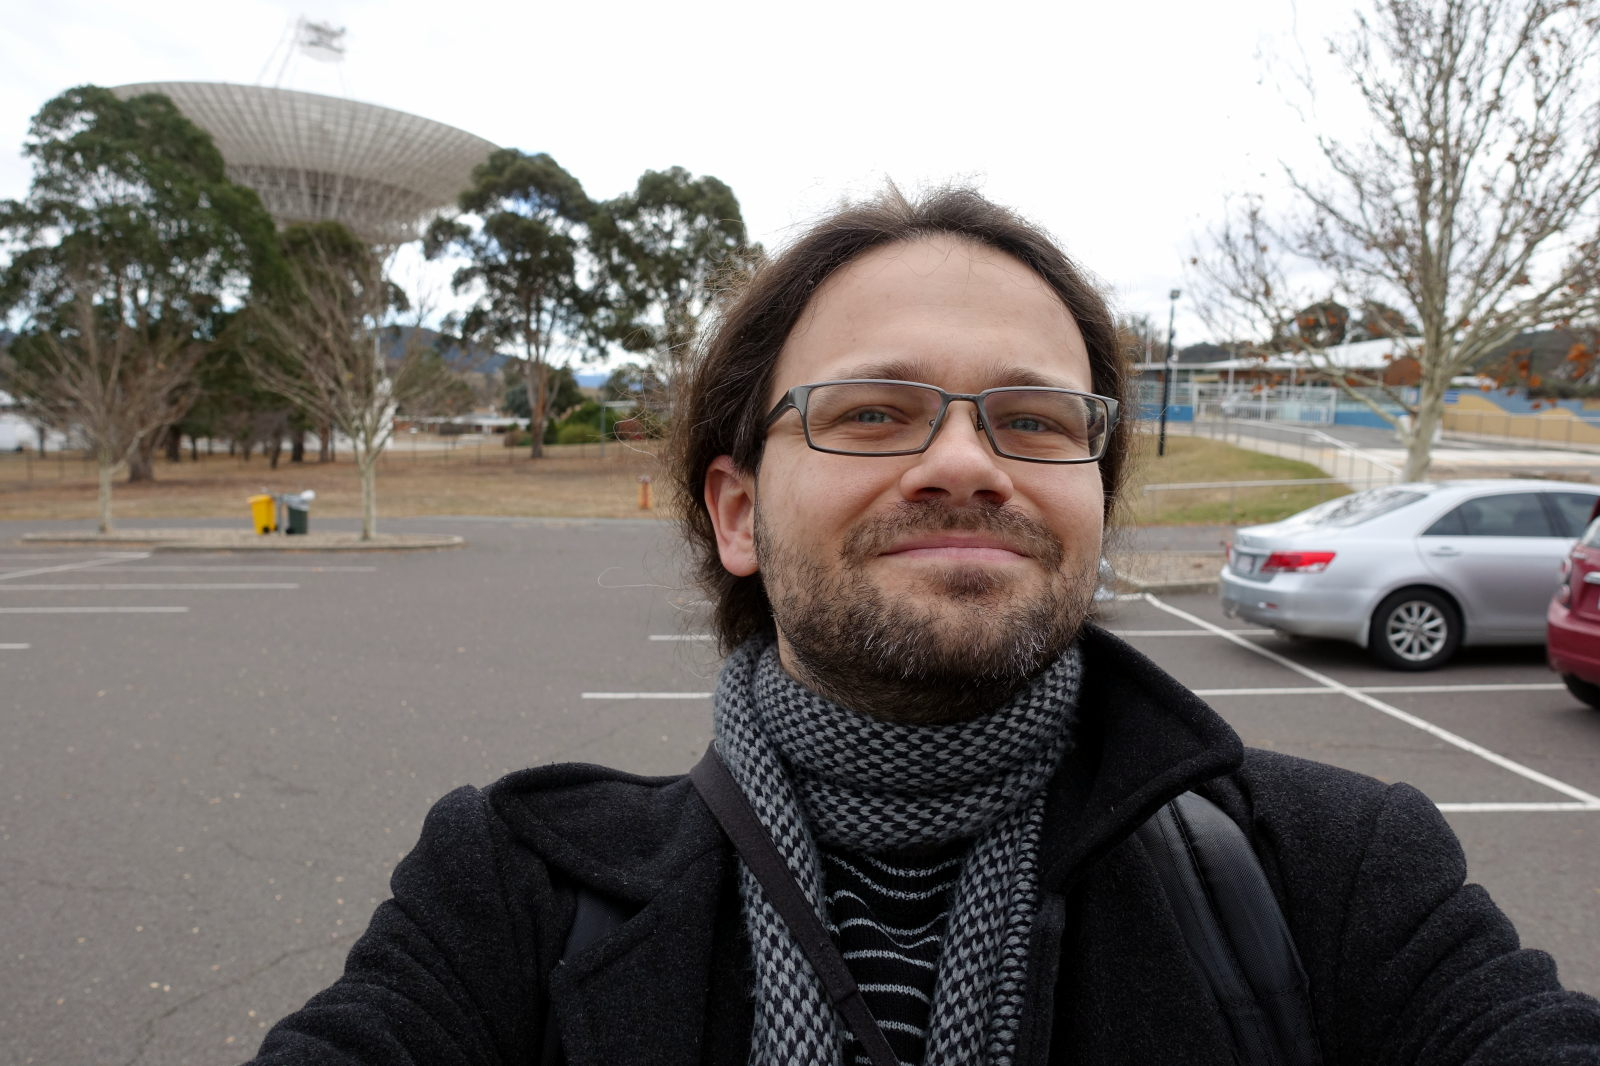 Selfie of a man inf ront of the big antenna.